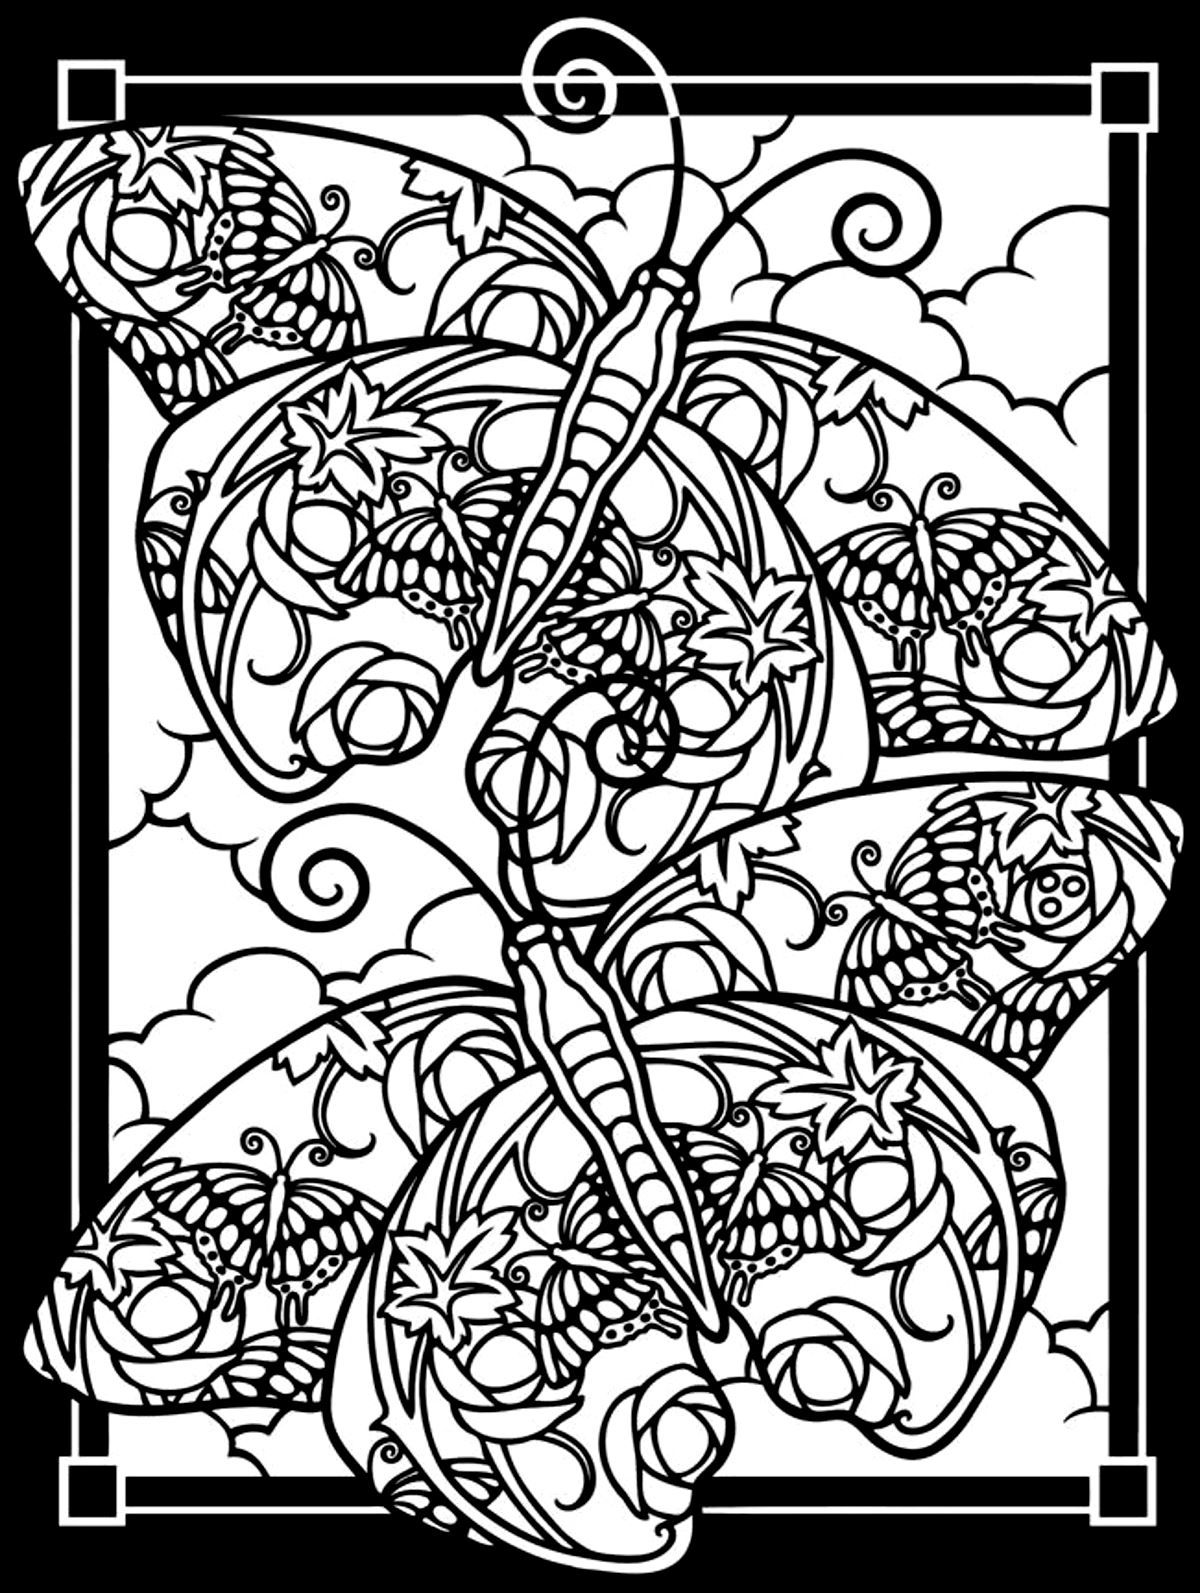 free coloring page coloring adult difficult two butterflies black background - Free Cool Coloring Pages For Adults